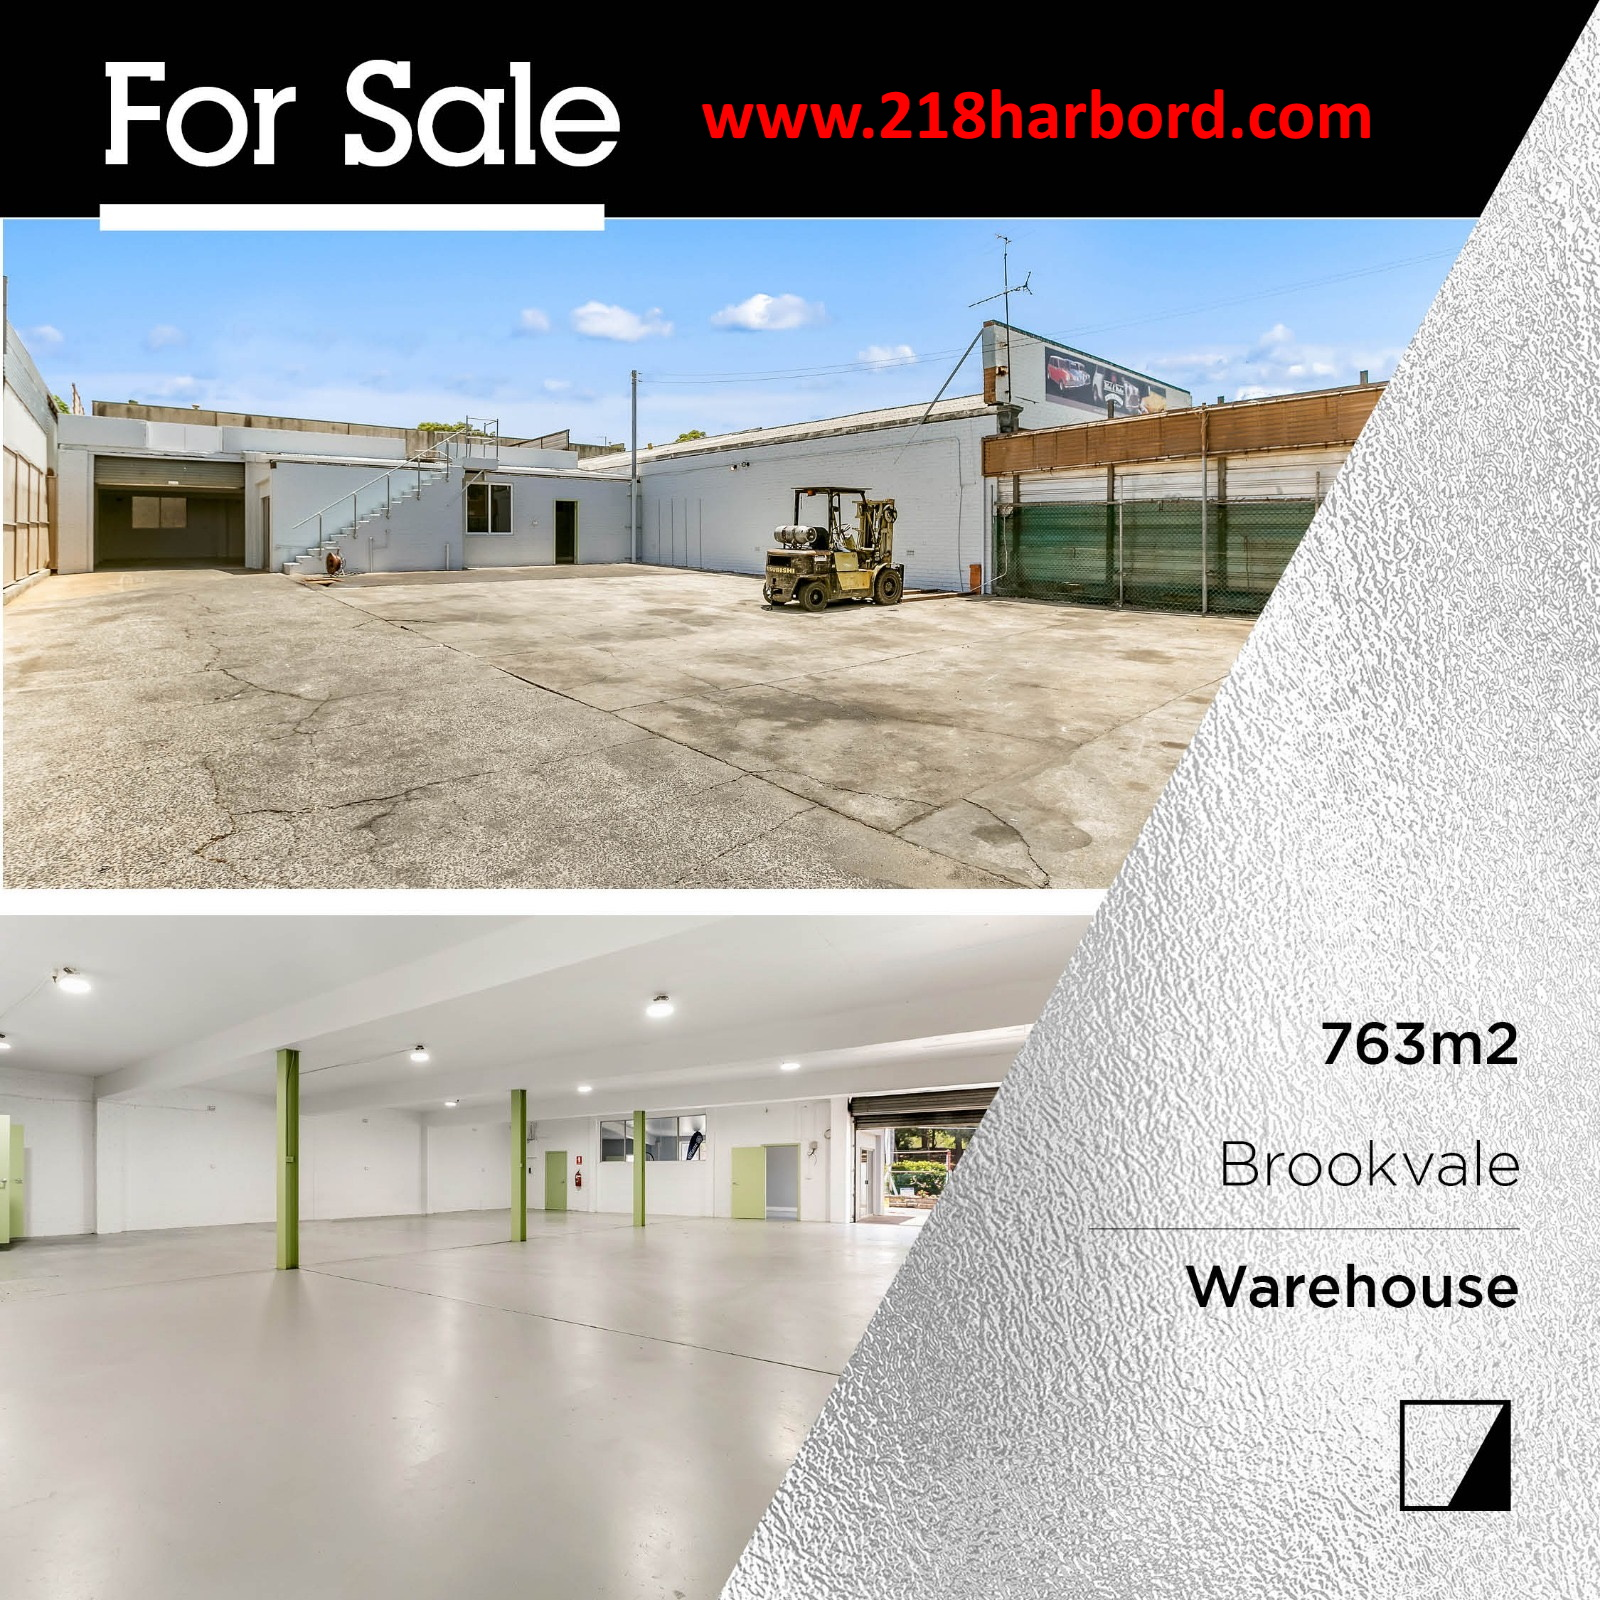 218 Harbord Road, Brookvale, Industrial warehouse for sale